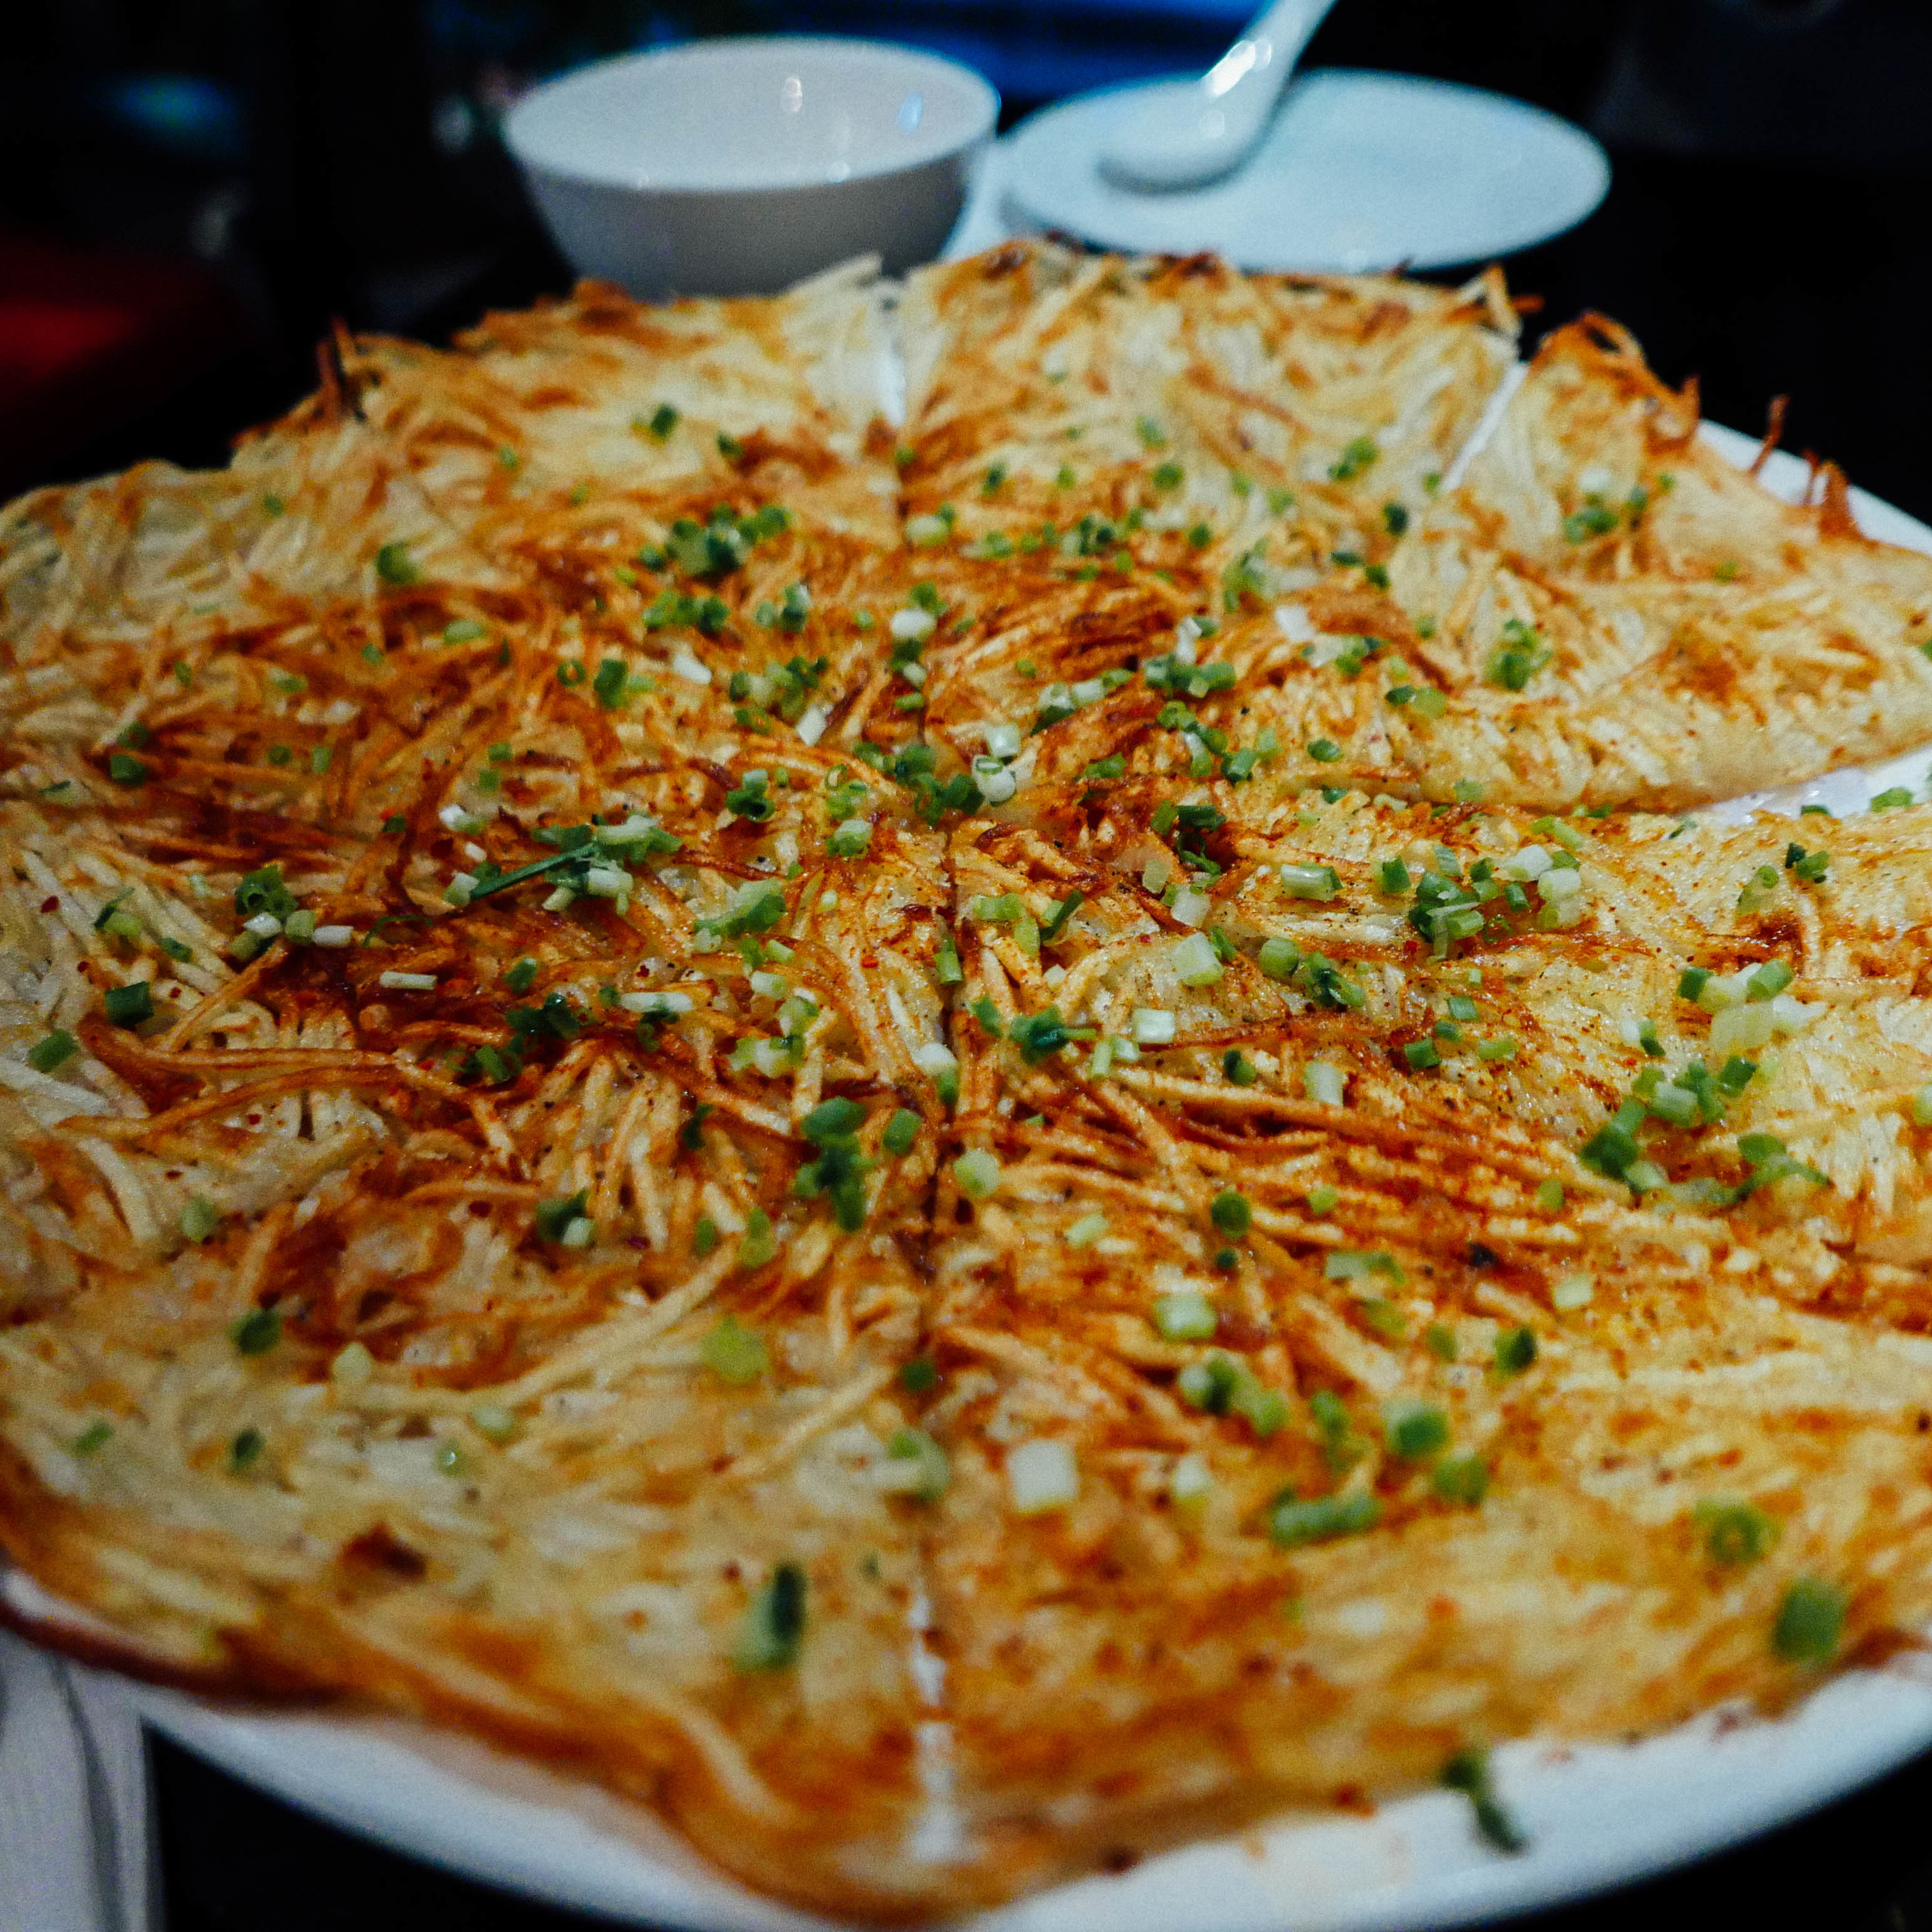 The crispy shredded potato pancake at Southern Barbarian.